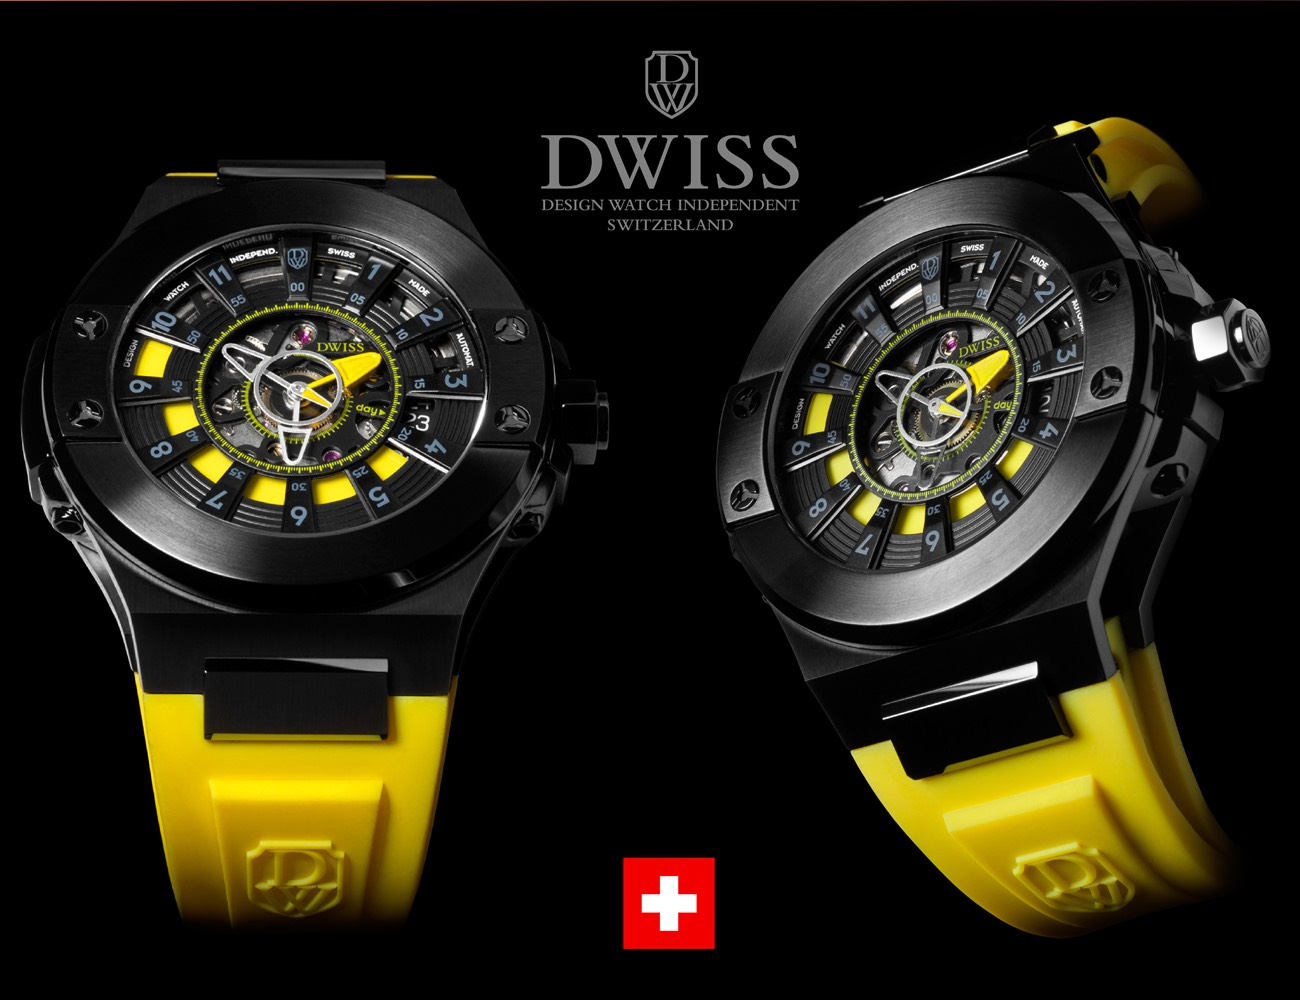 DWISS M2 Automatic Swiss Watch with Innovative Time Reading